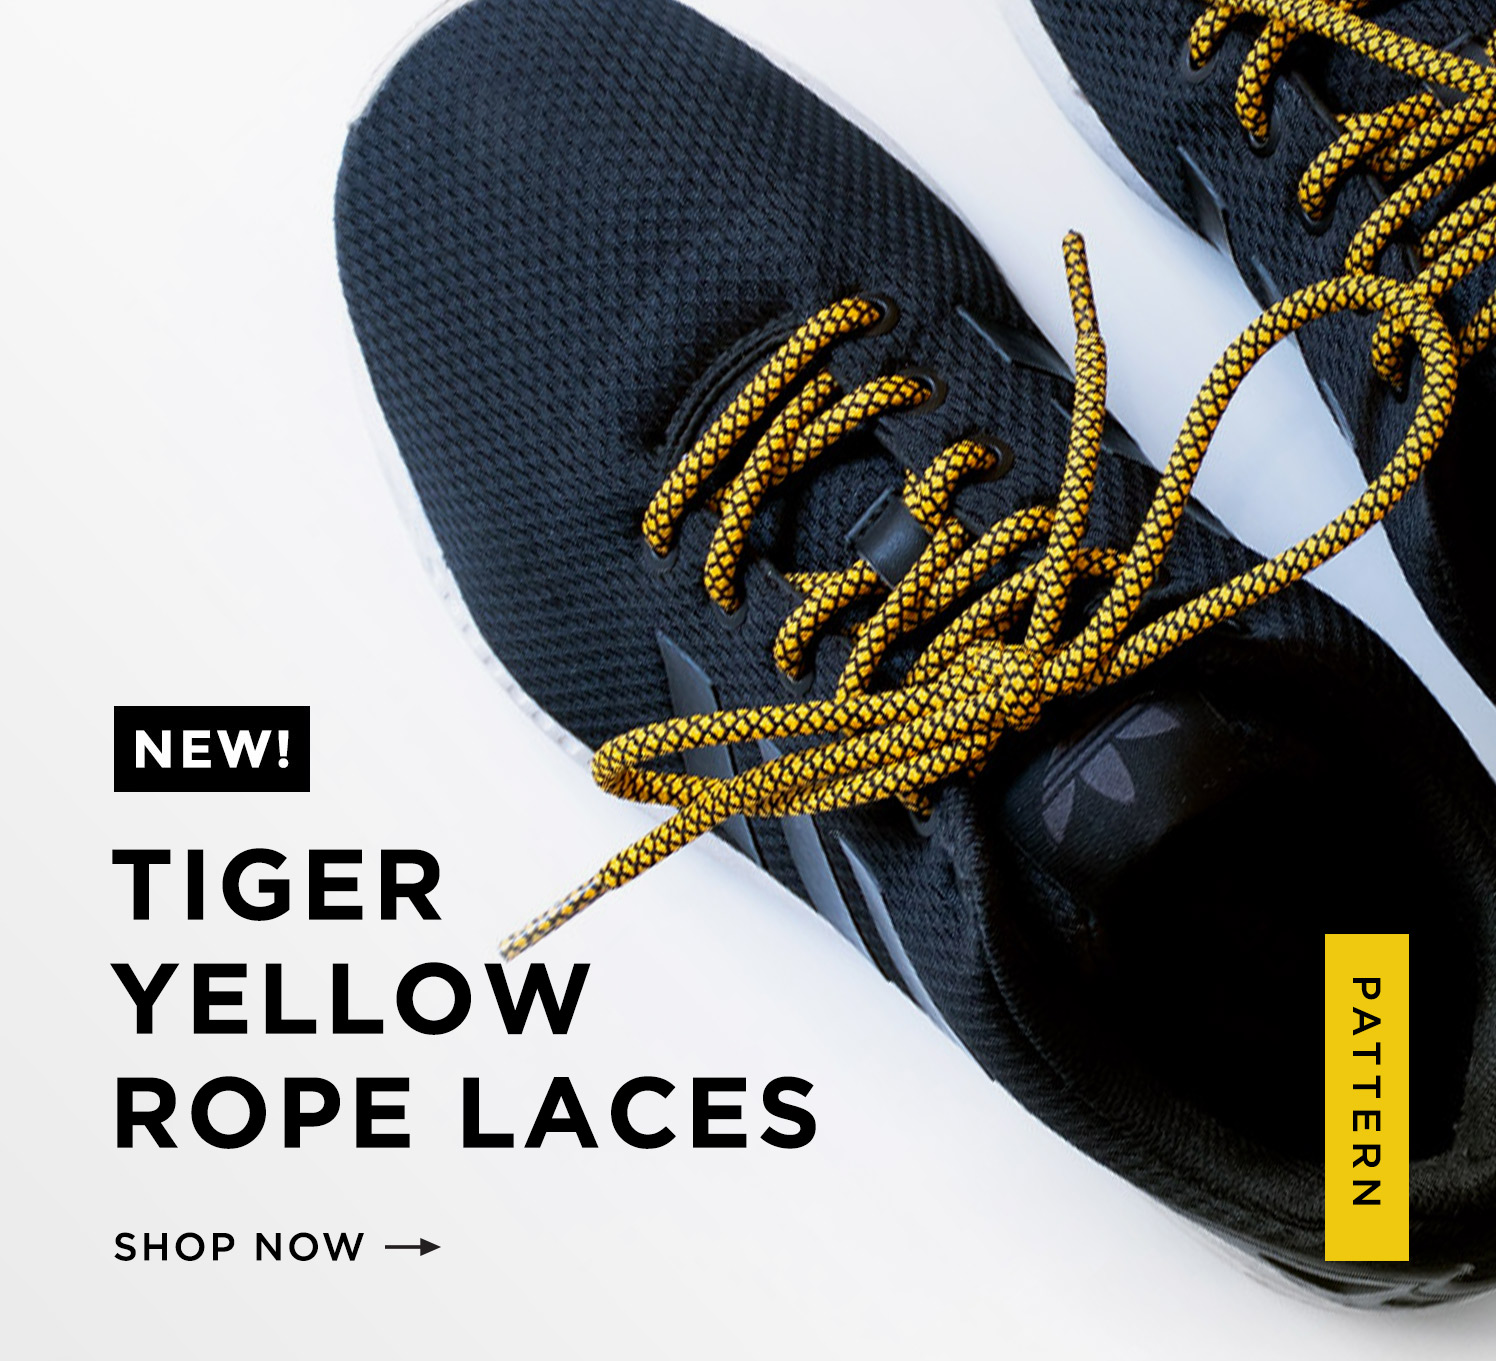 TIGER_YELLOW_ROPE_LACES_NEW_2.jpg